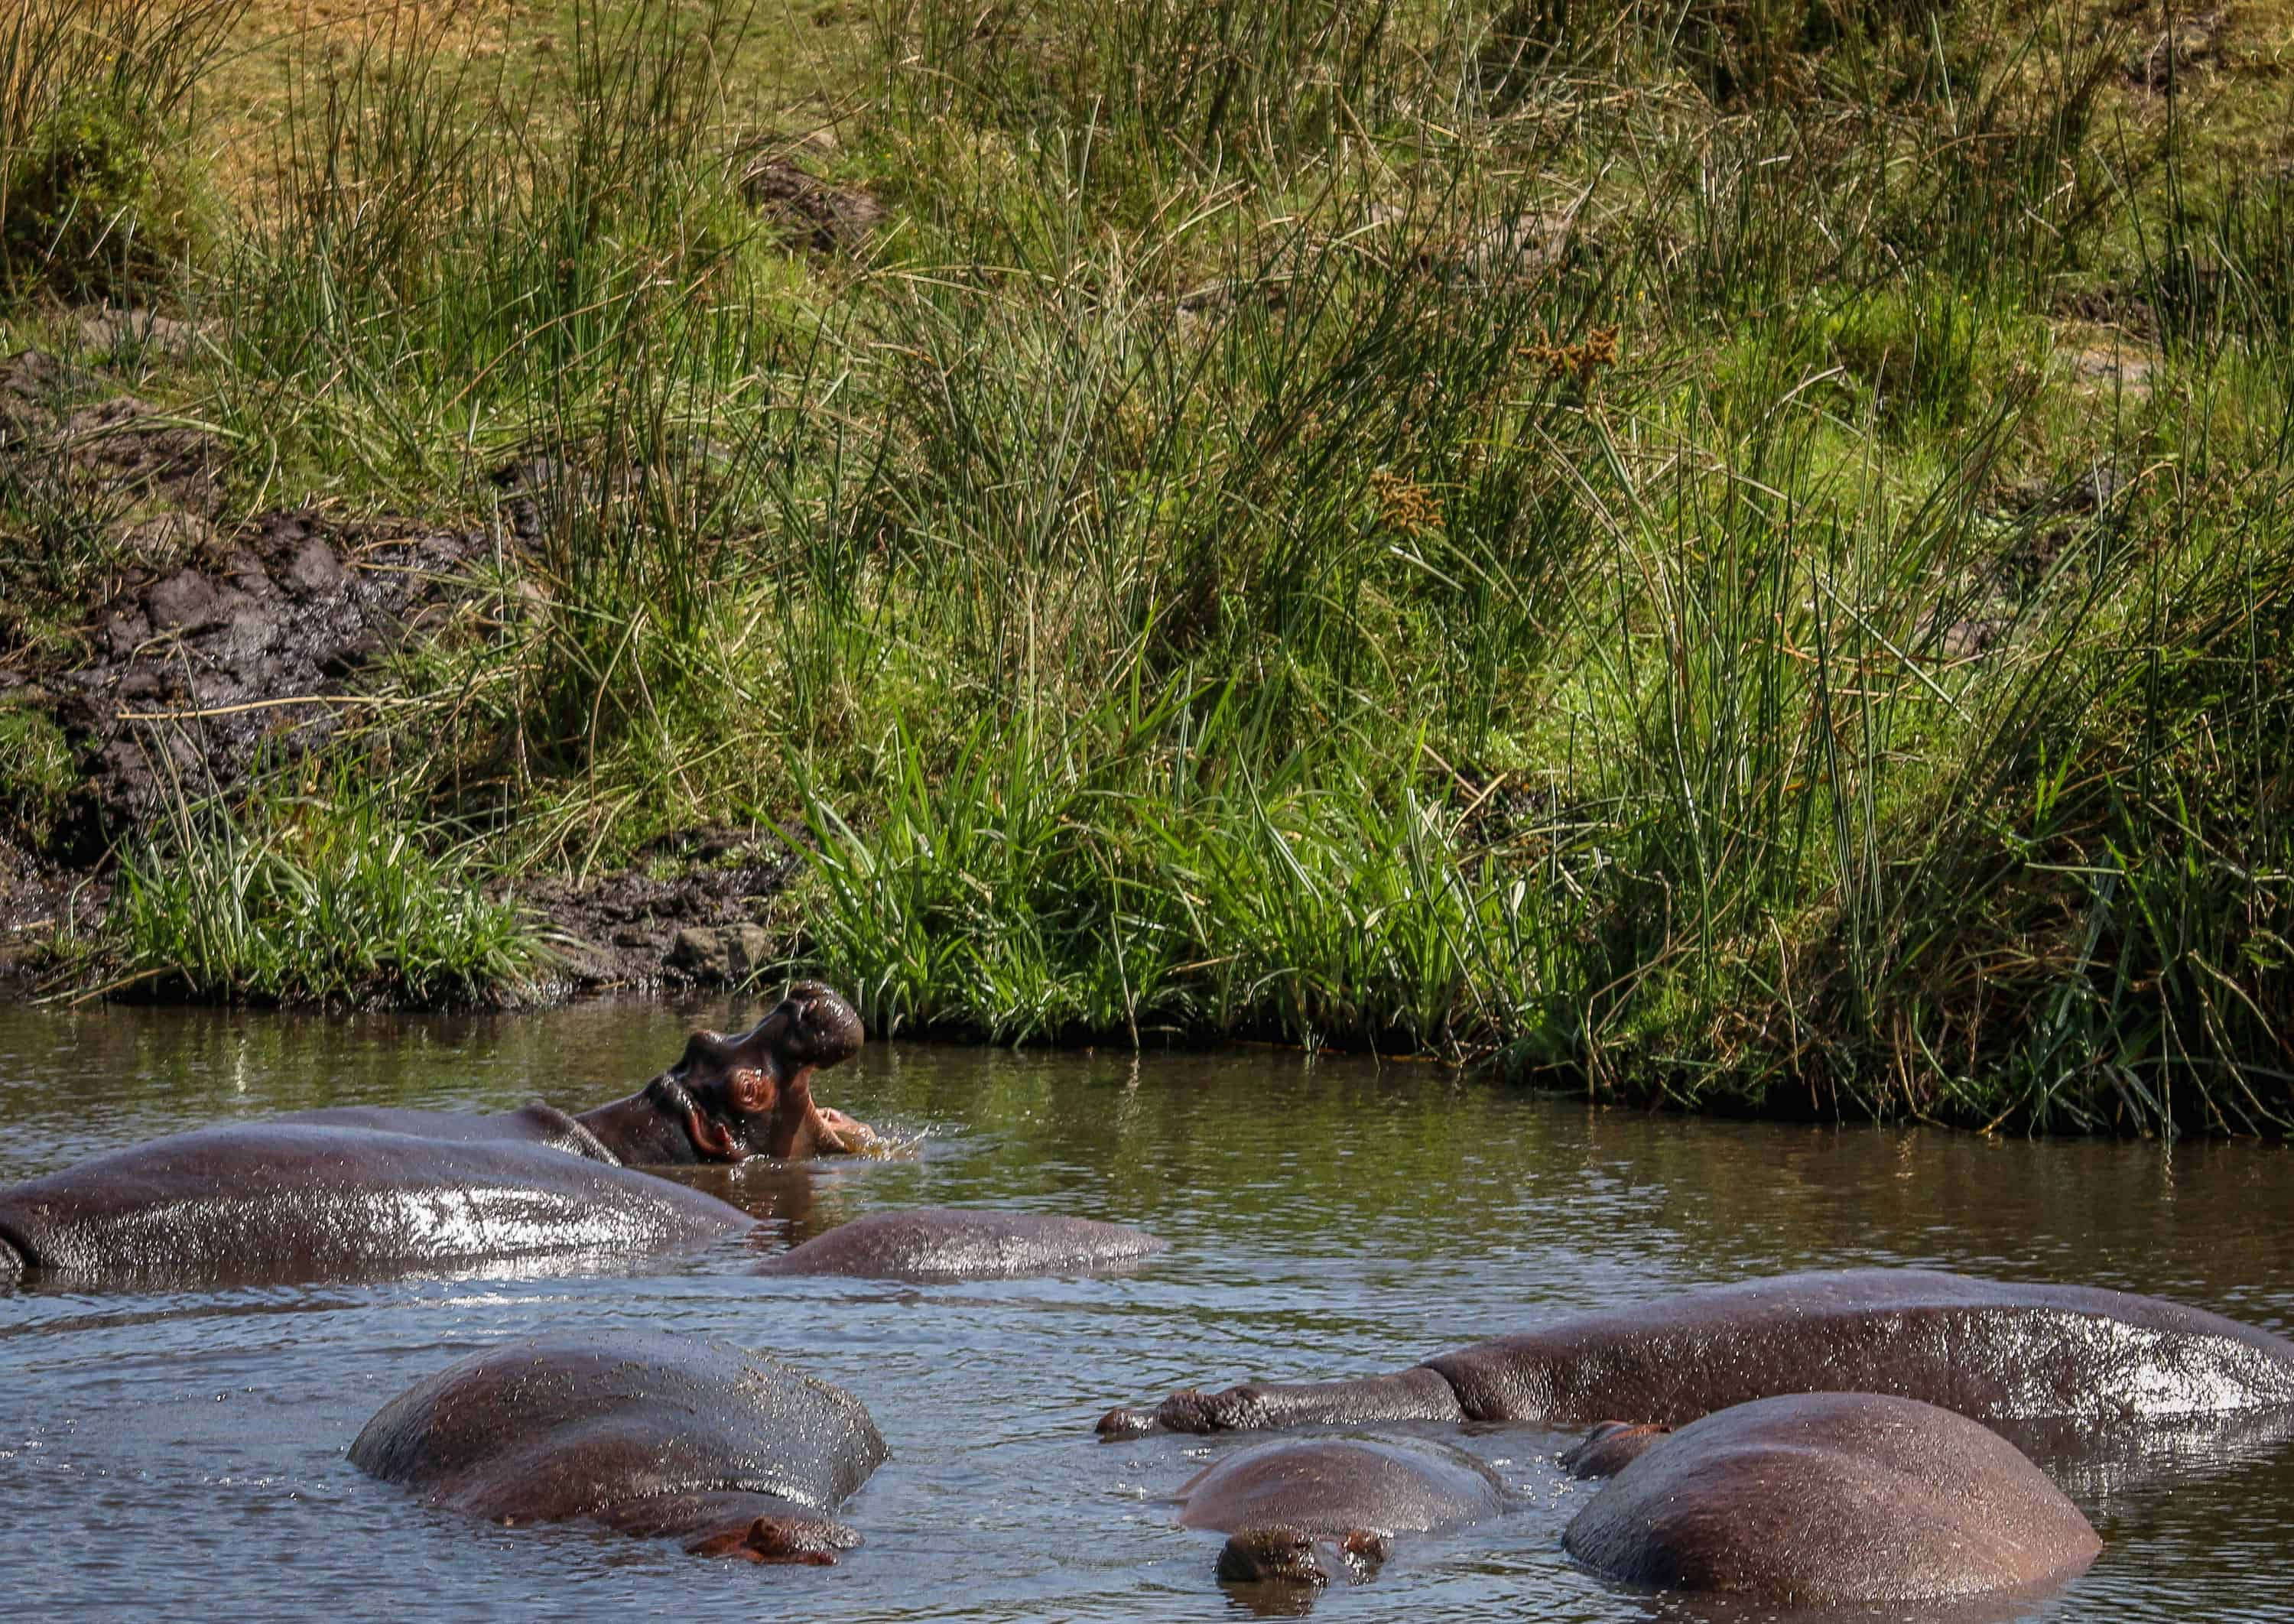 Ngorongoro Conservation Area- Hippos